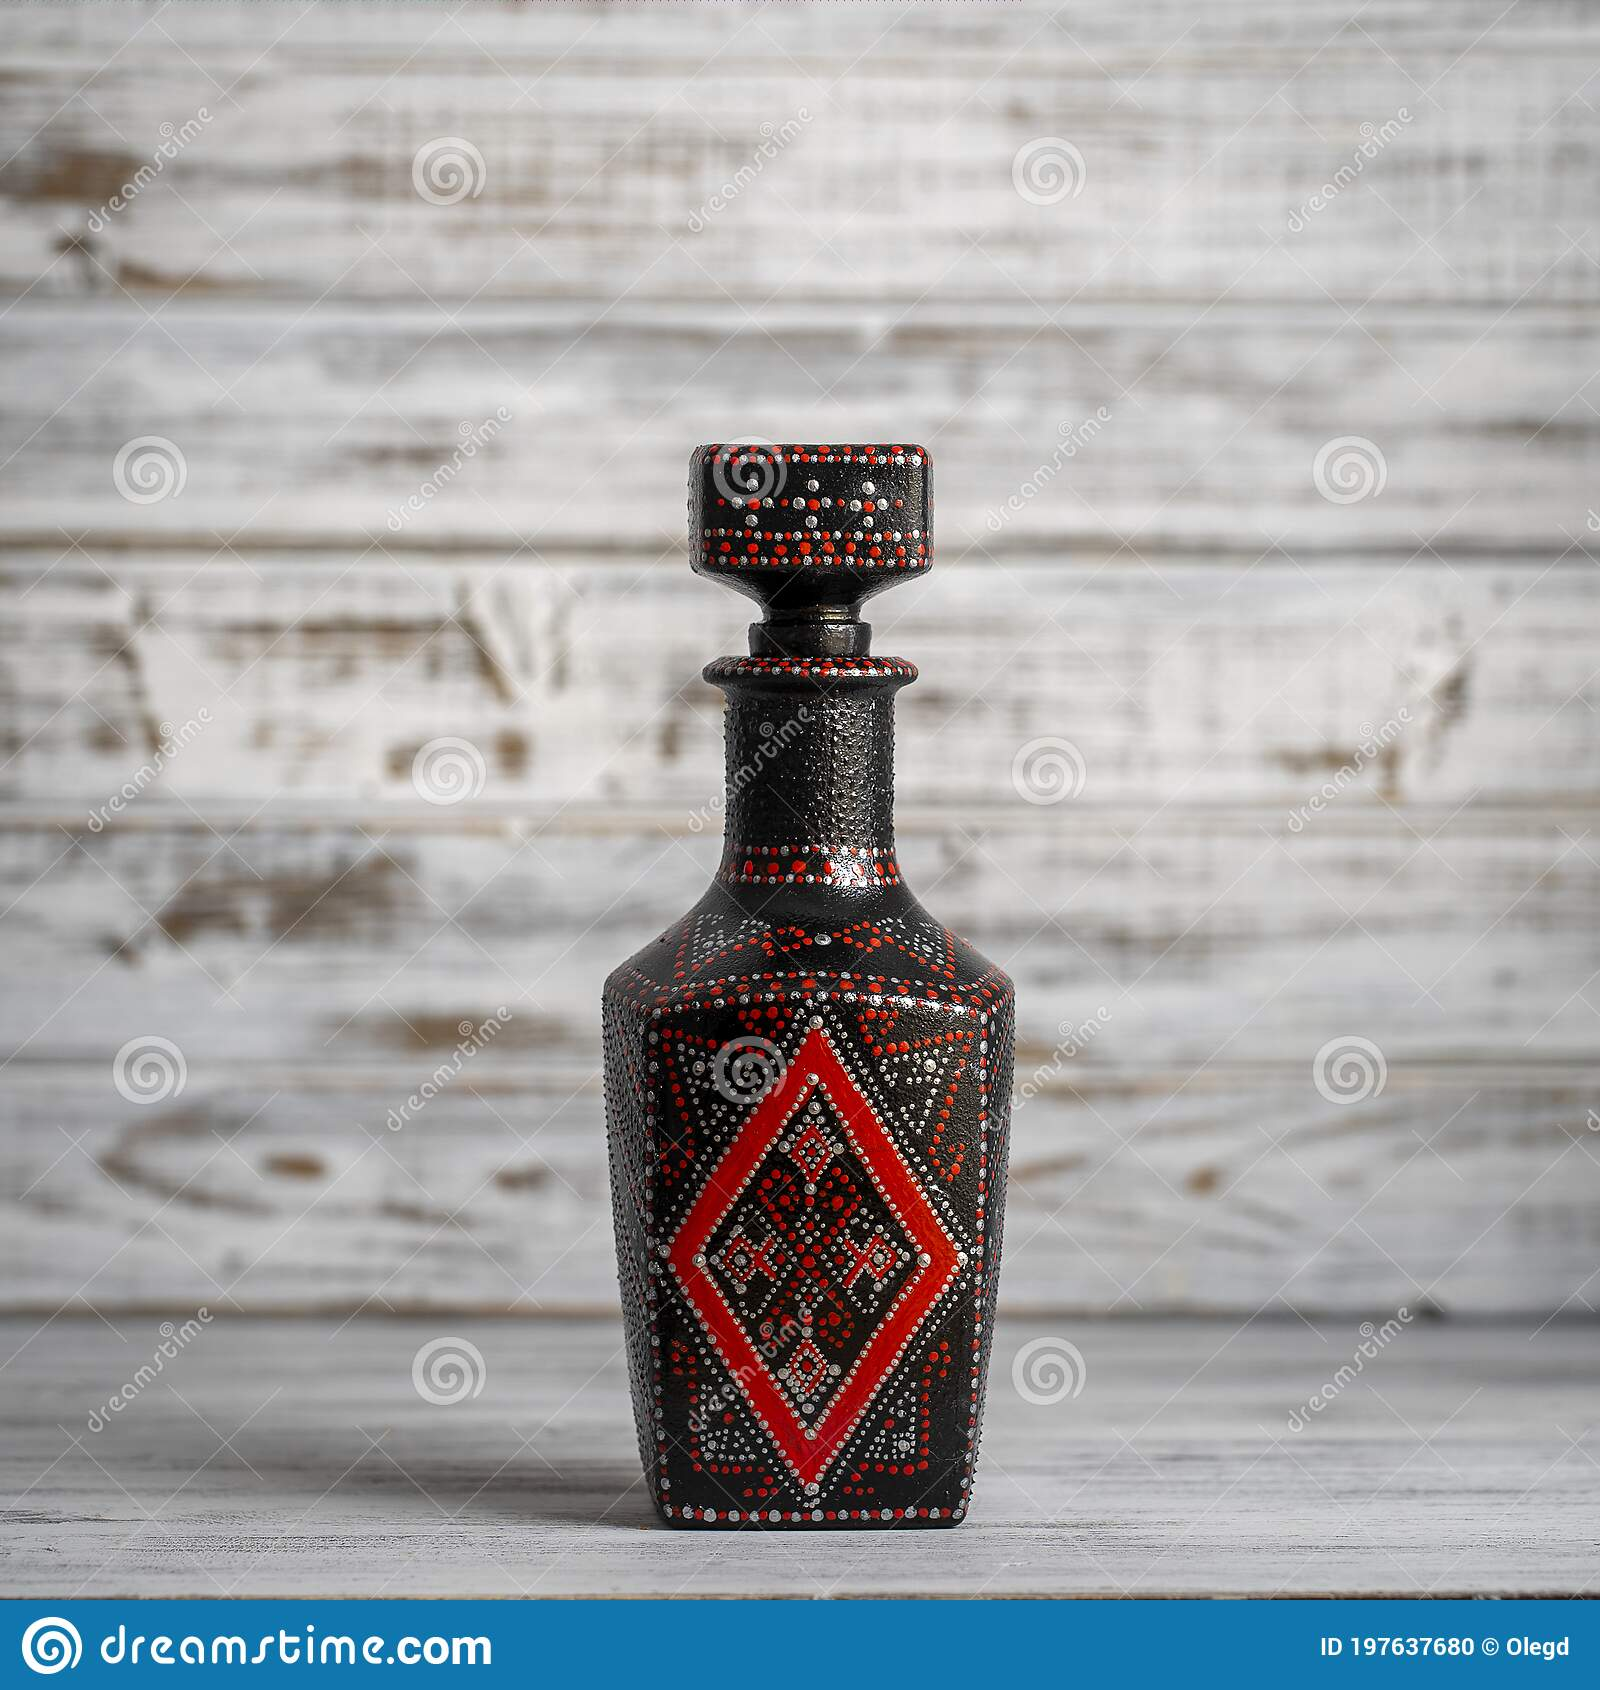 497 Abstract Bottle Painting Red Photos Free Royalty Free Stock Photos From Dreamstime